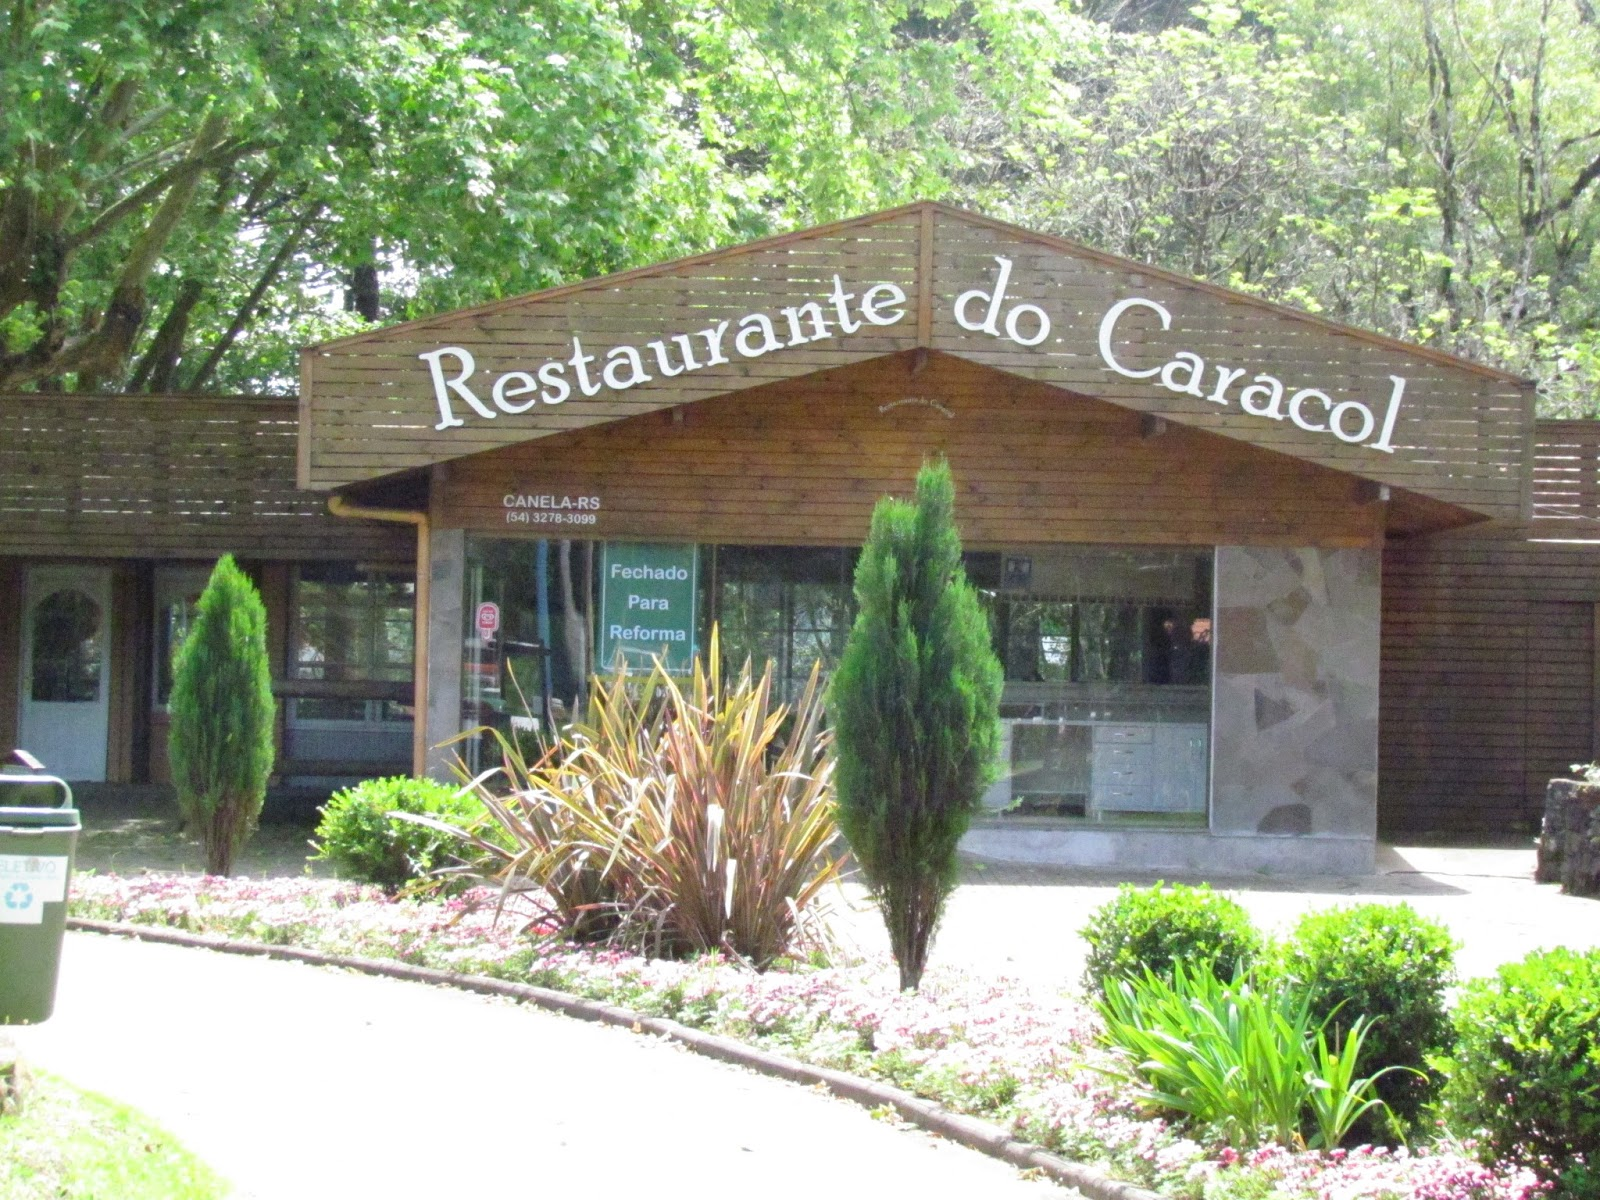 Restaurante no parque do Caracol